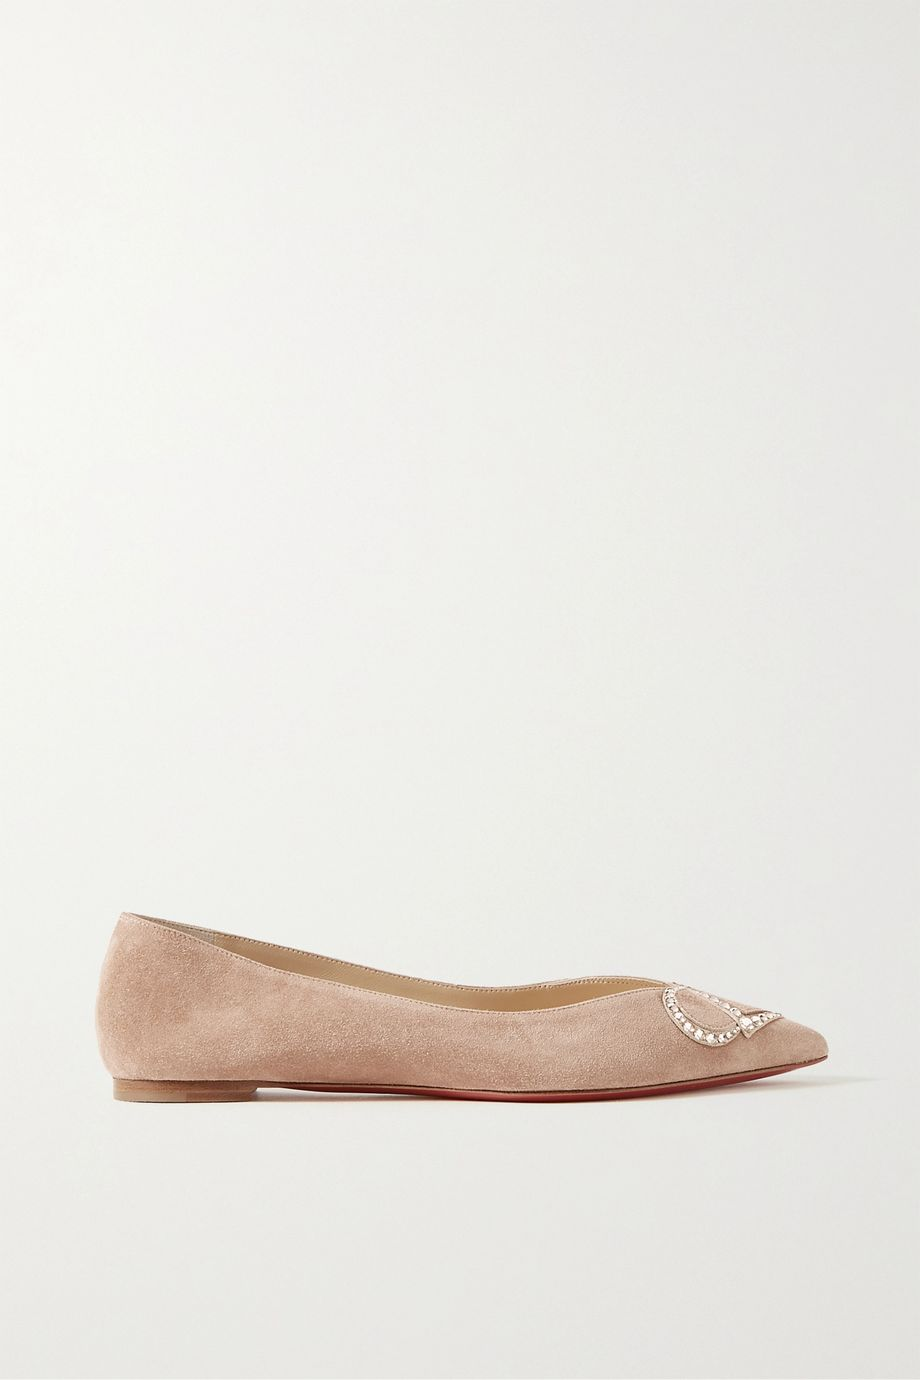 Christian Louboutin CL crystal-embellished suede point-toe flats